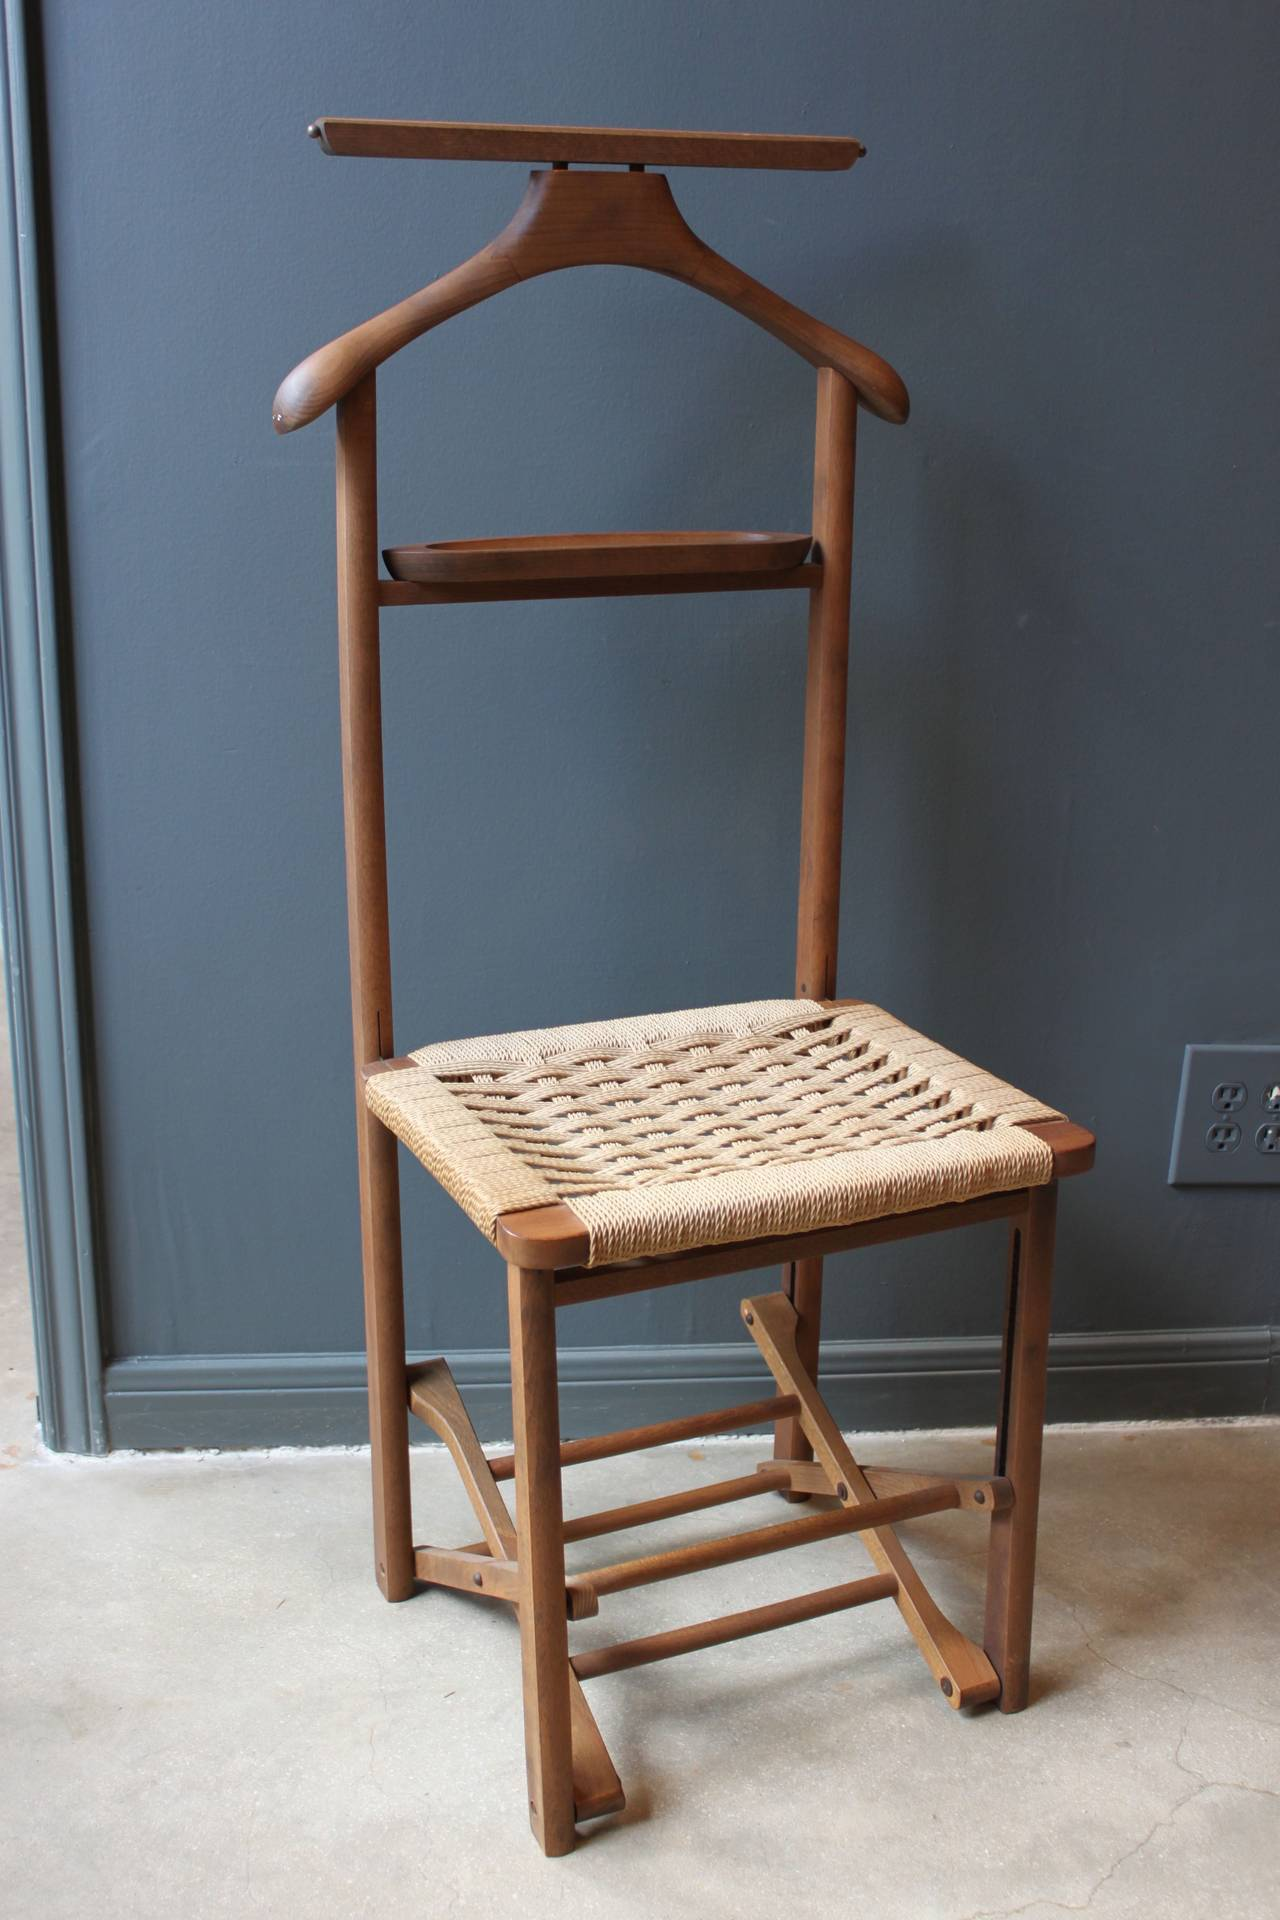 Vintage Wood Valet Folding Chair With Woven Caned Seat Mid 20th Century In Good